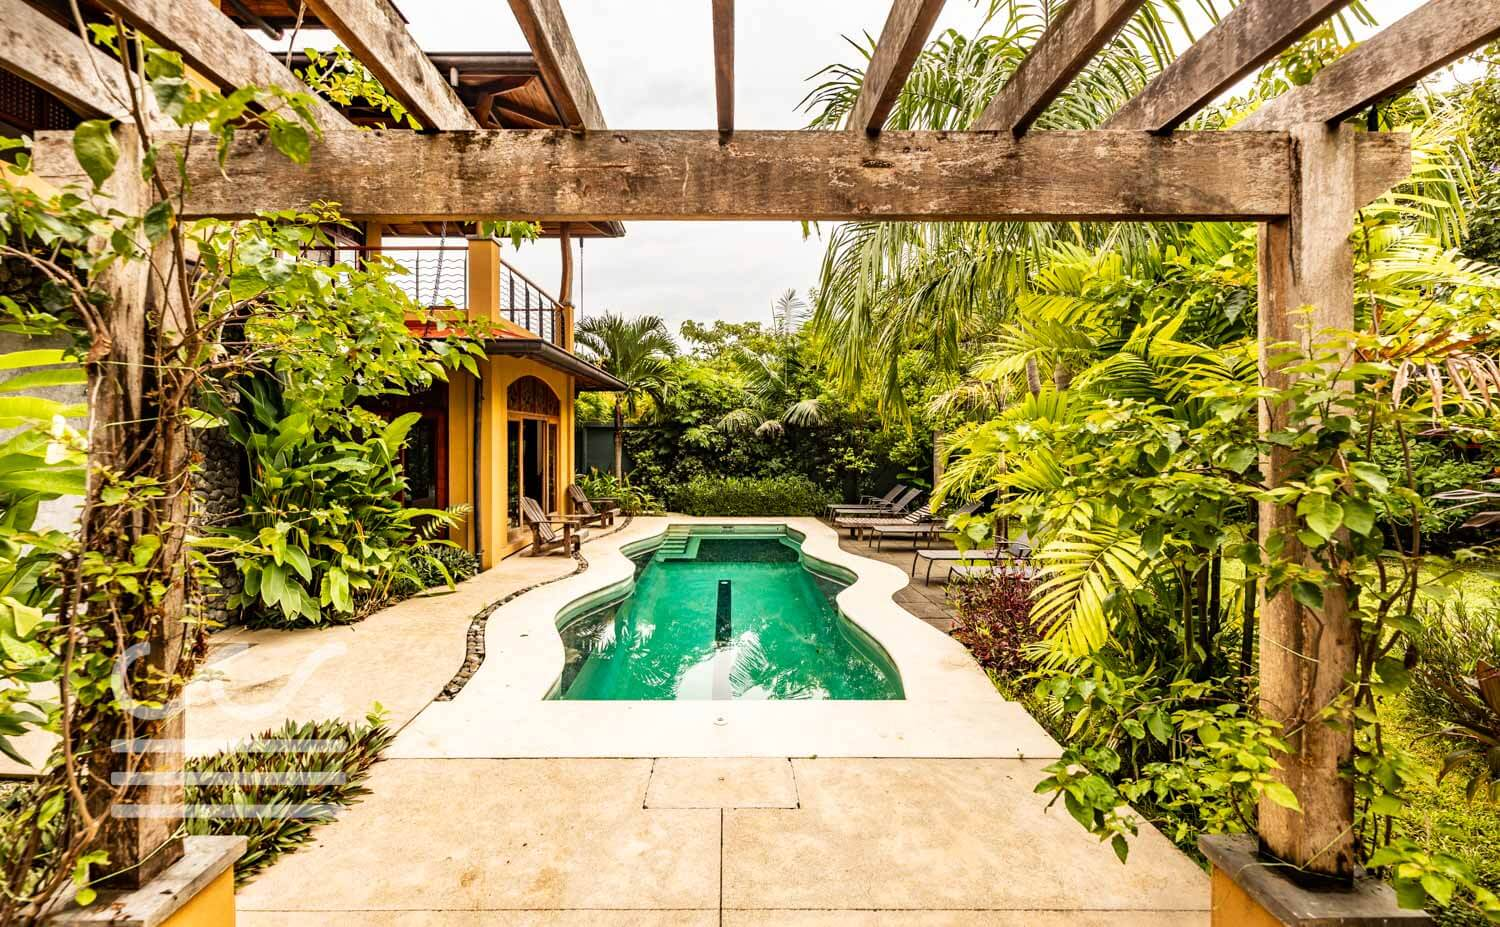 Endless-Summer-Wanderlust-Realty-Real-Estate-Rentals-Nosara-Costa-Rica-5.jpg